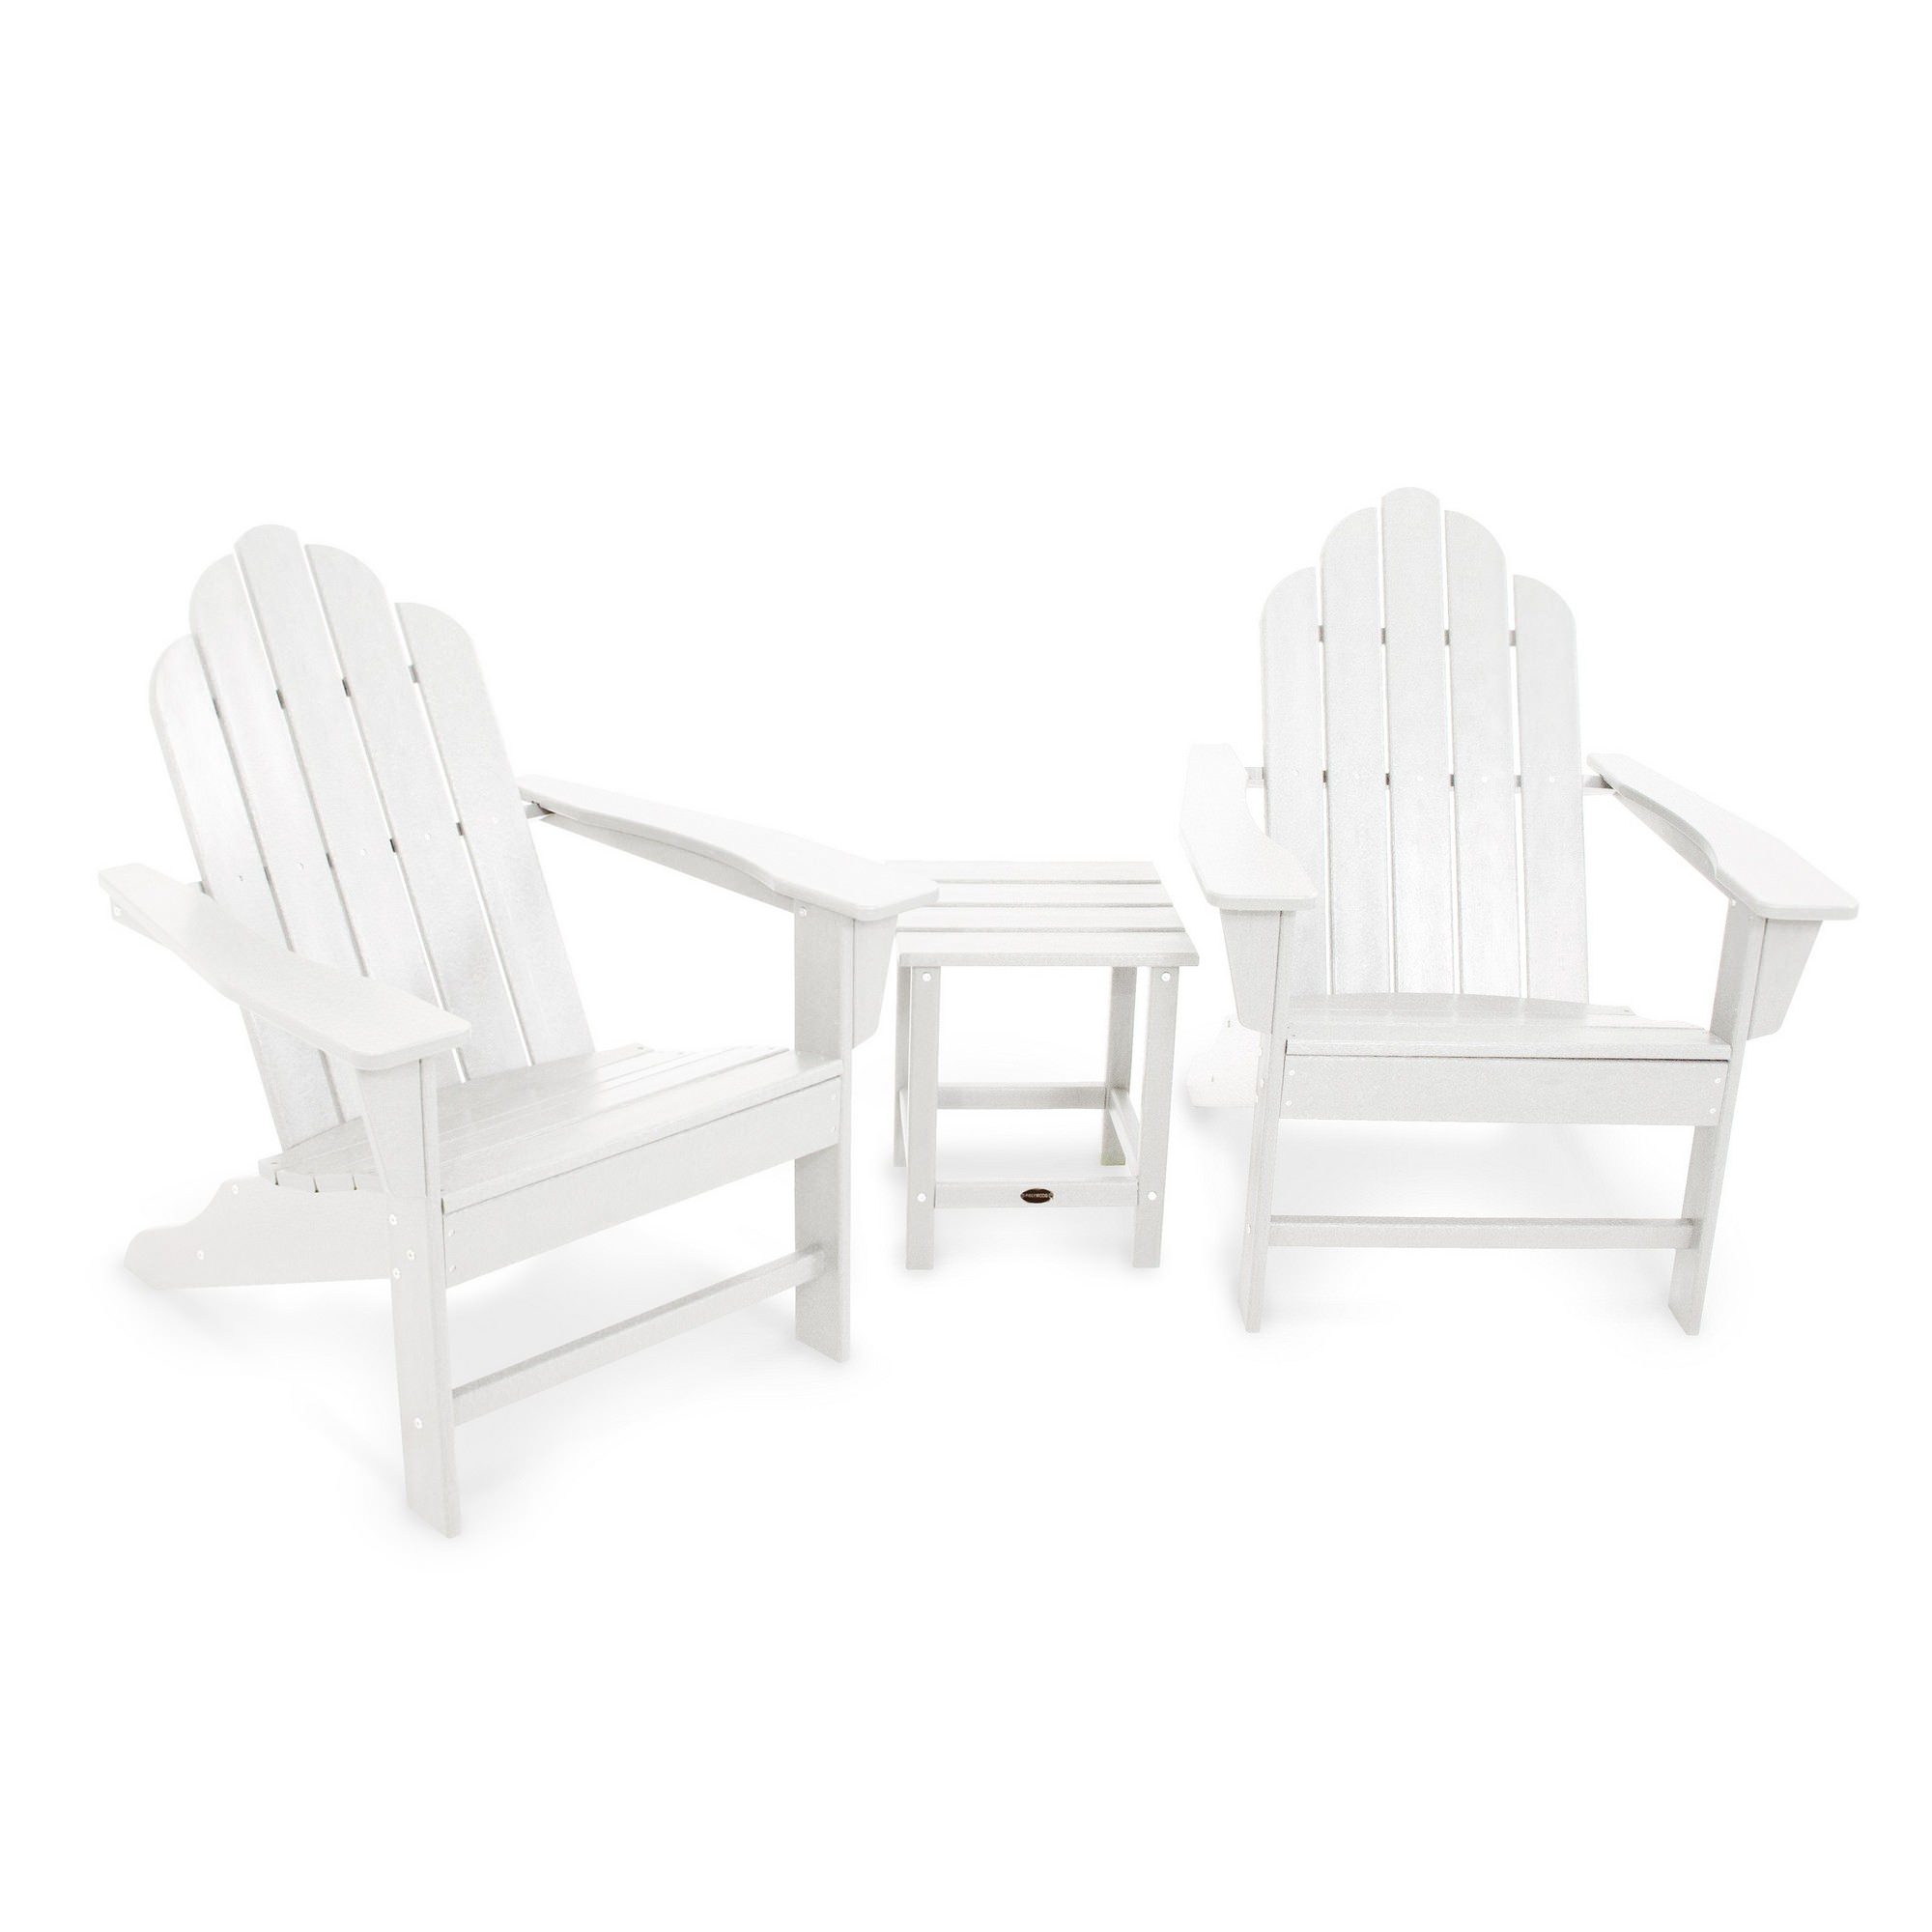 Furniture Clearance Long Island: Polywood Long Island Adirondack 2 Chair And Side Table Set